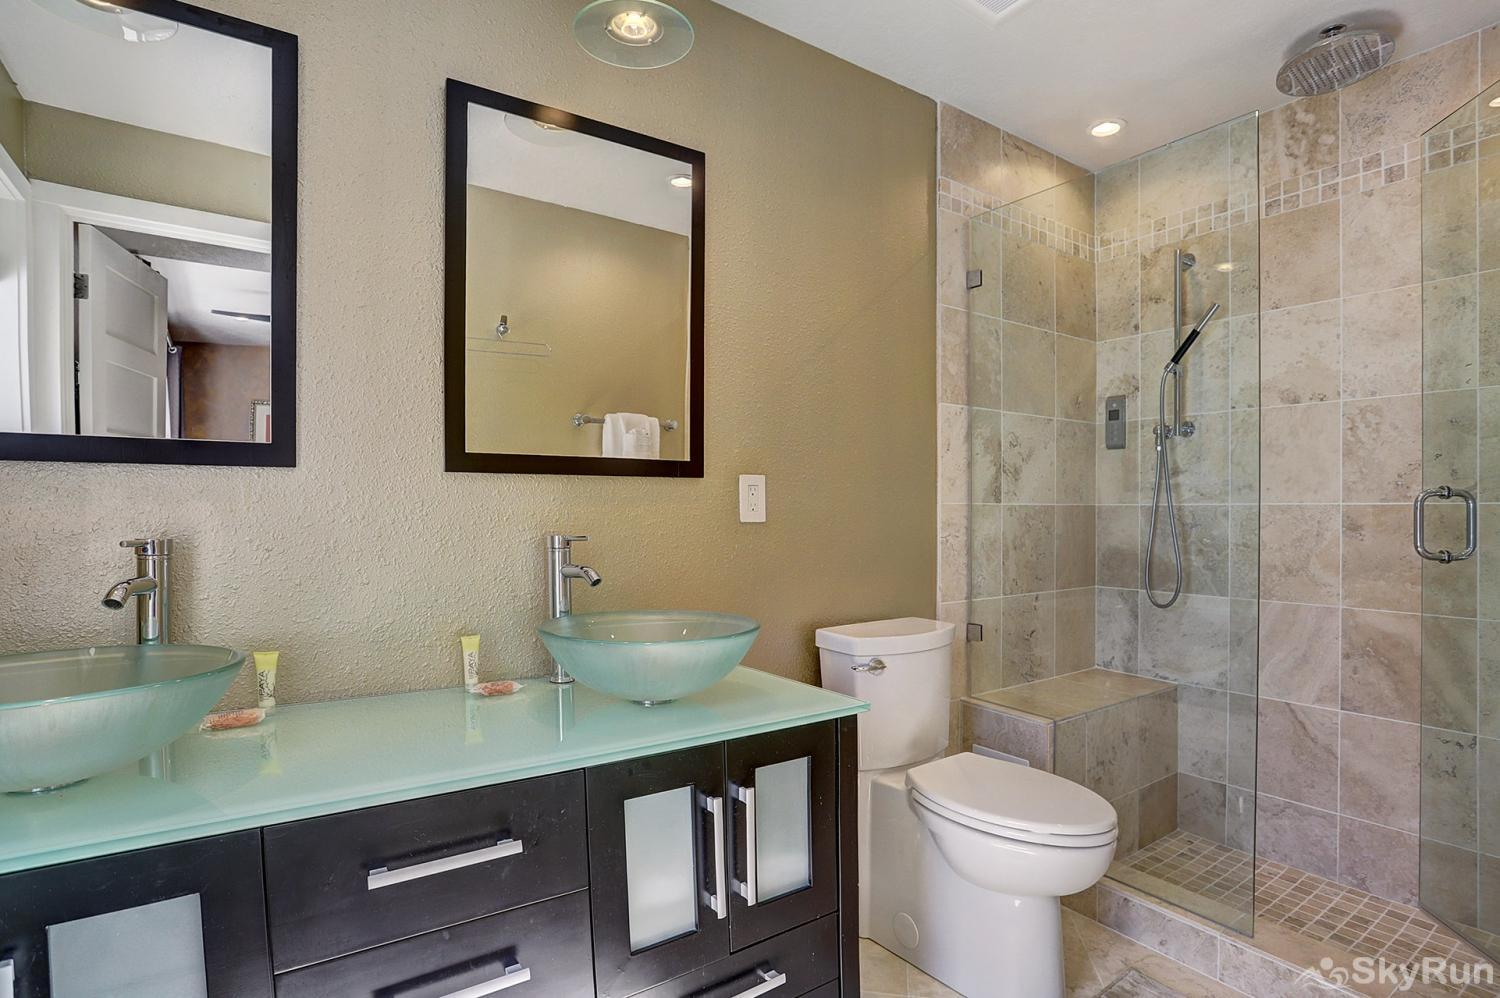 2061 The Pines Master Bathroom